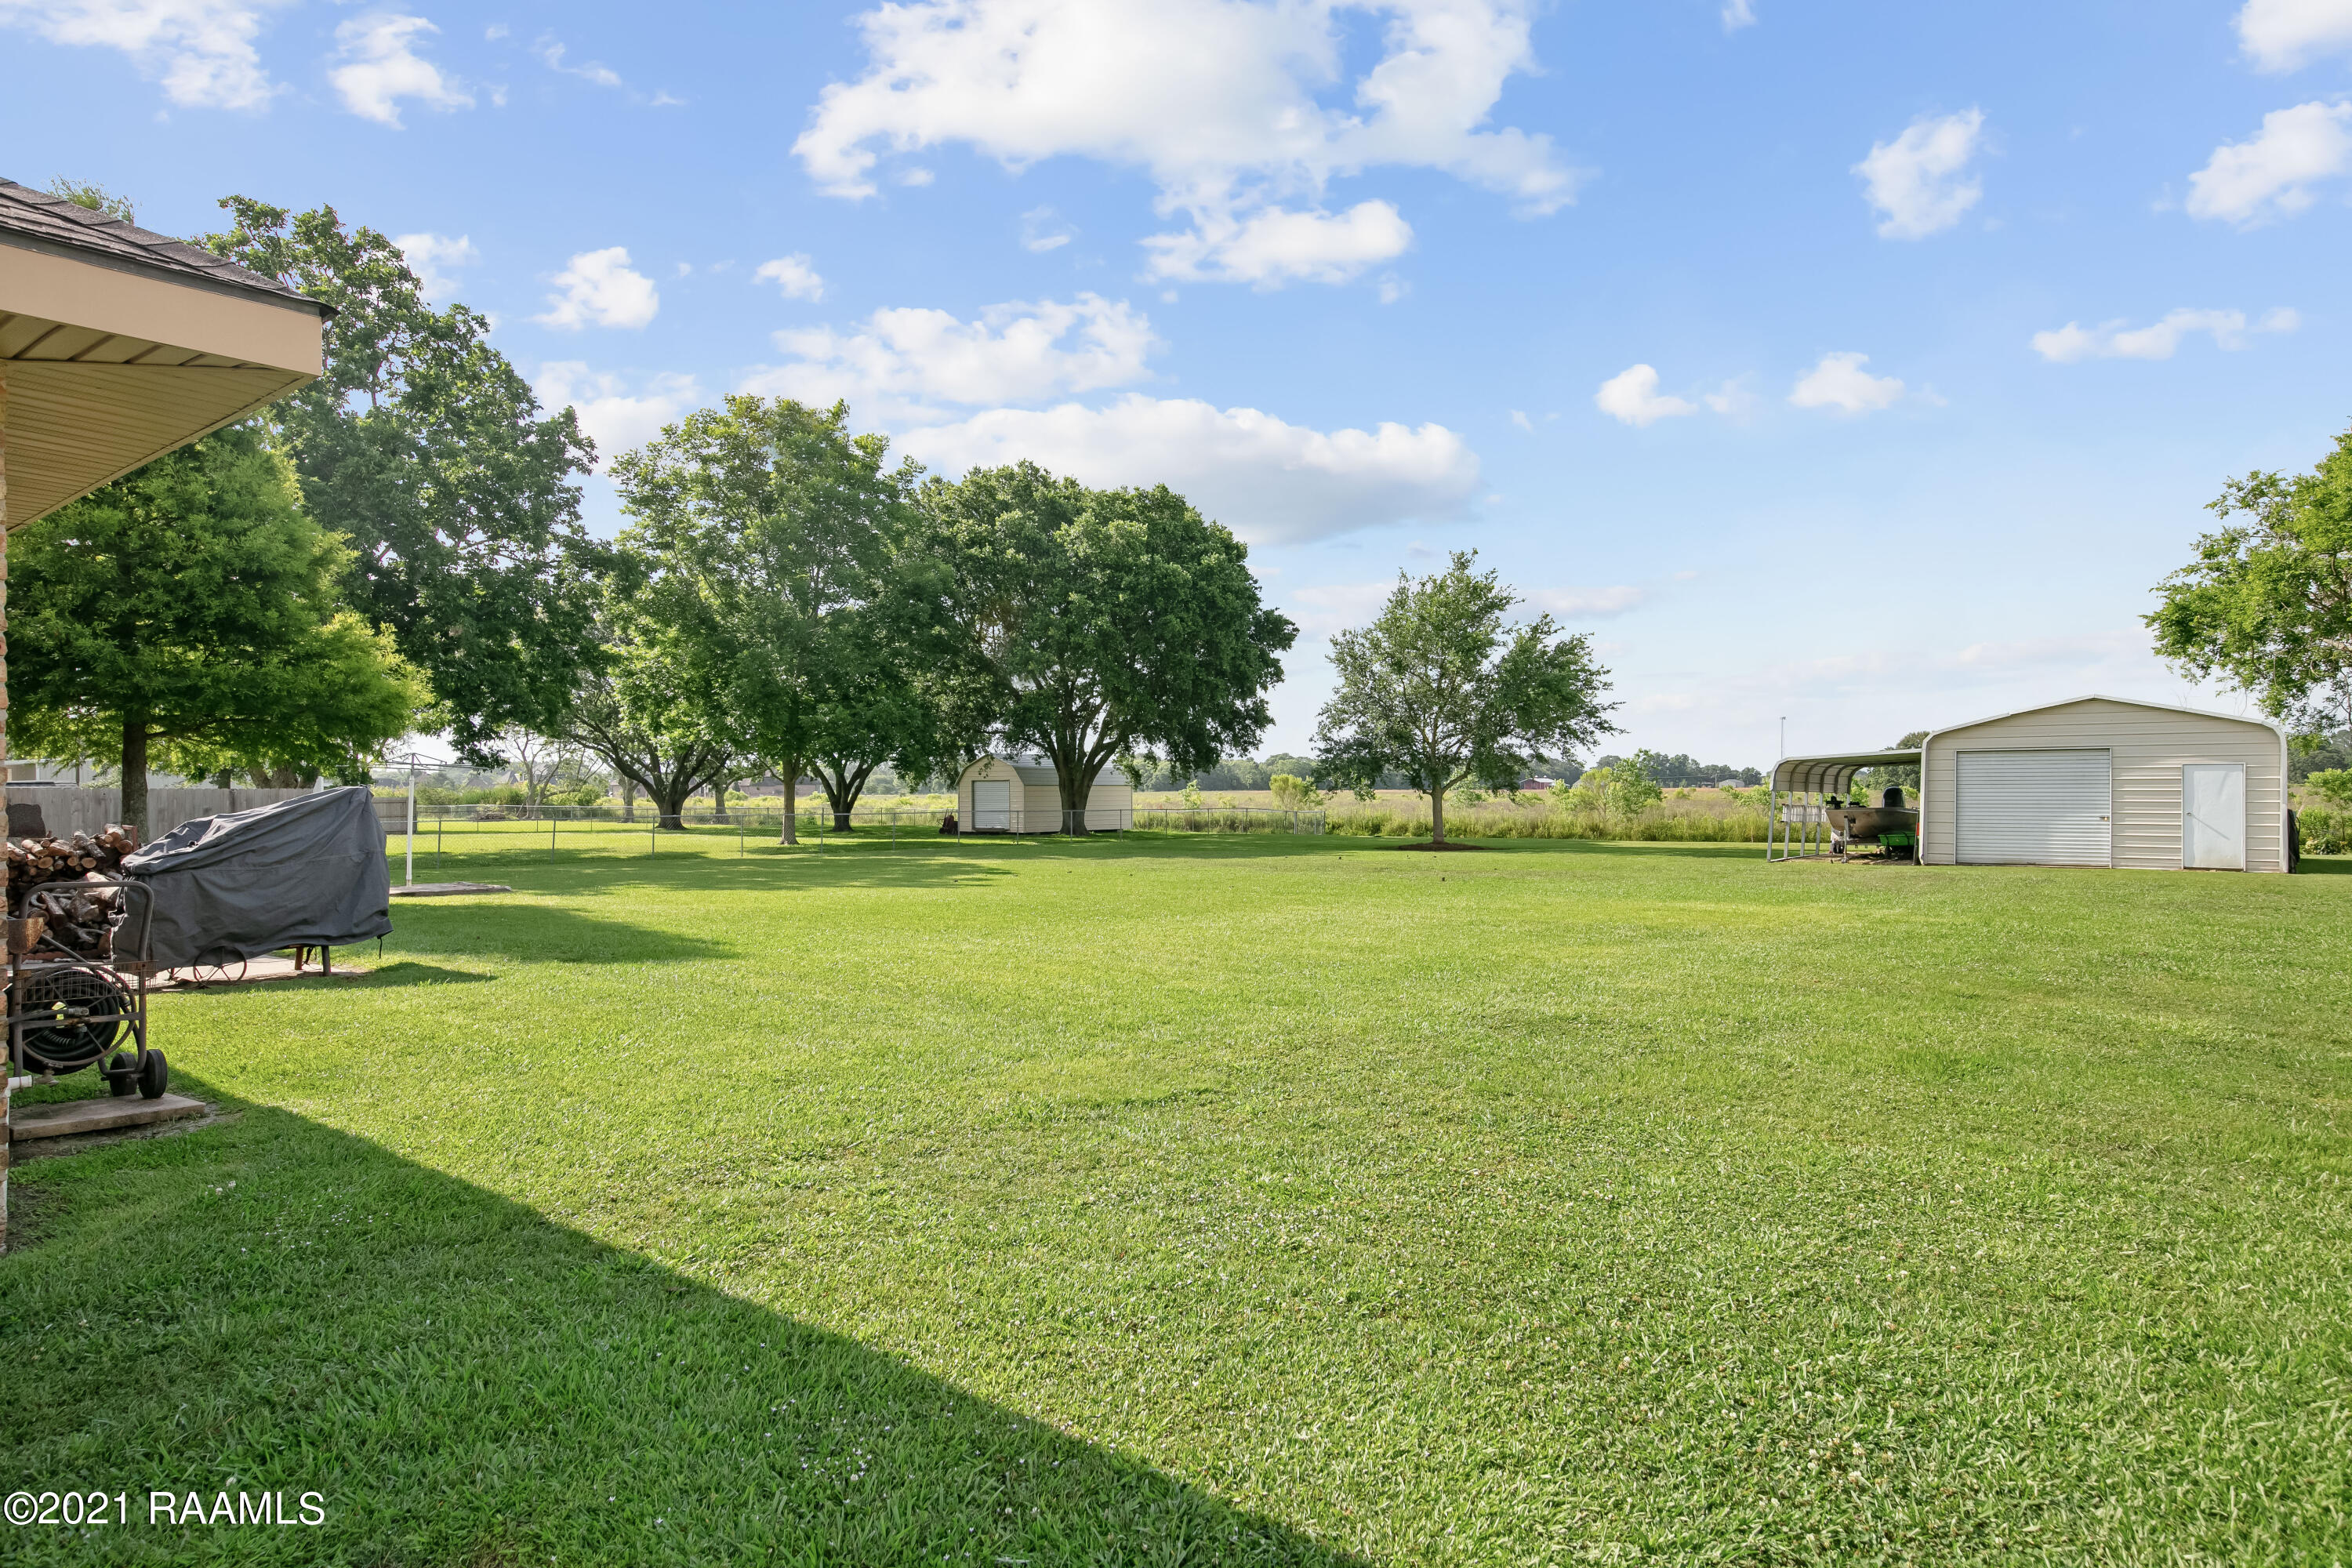 225 Countryview Drive, Youngsville, LA 70592 Photo #18